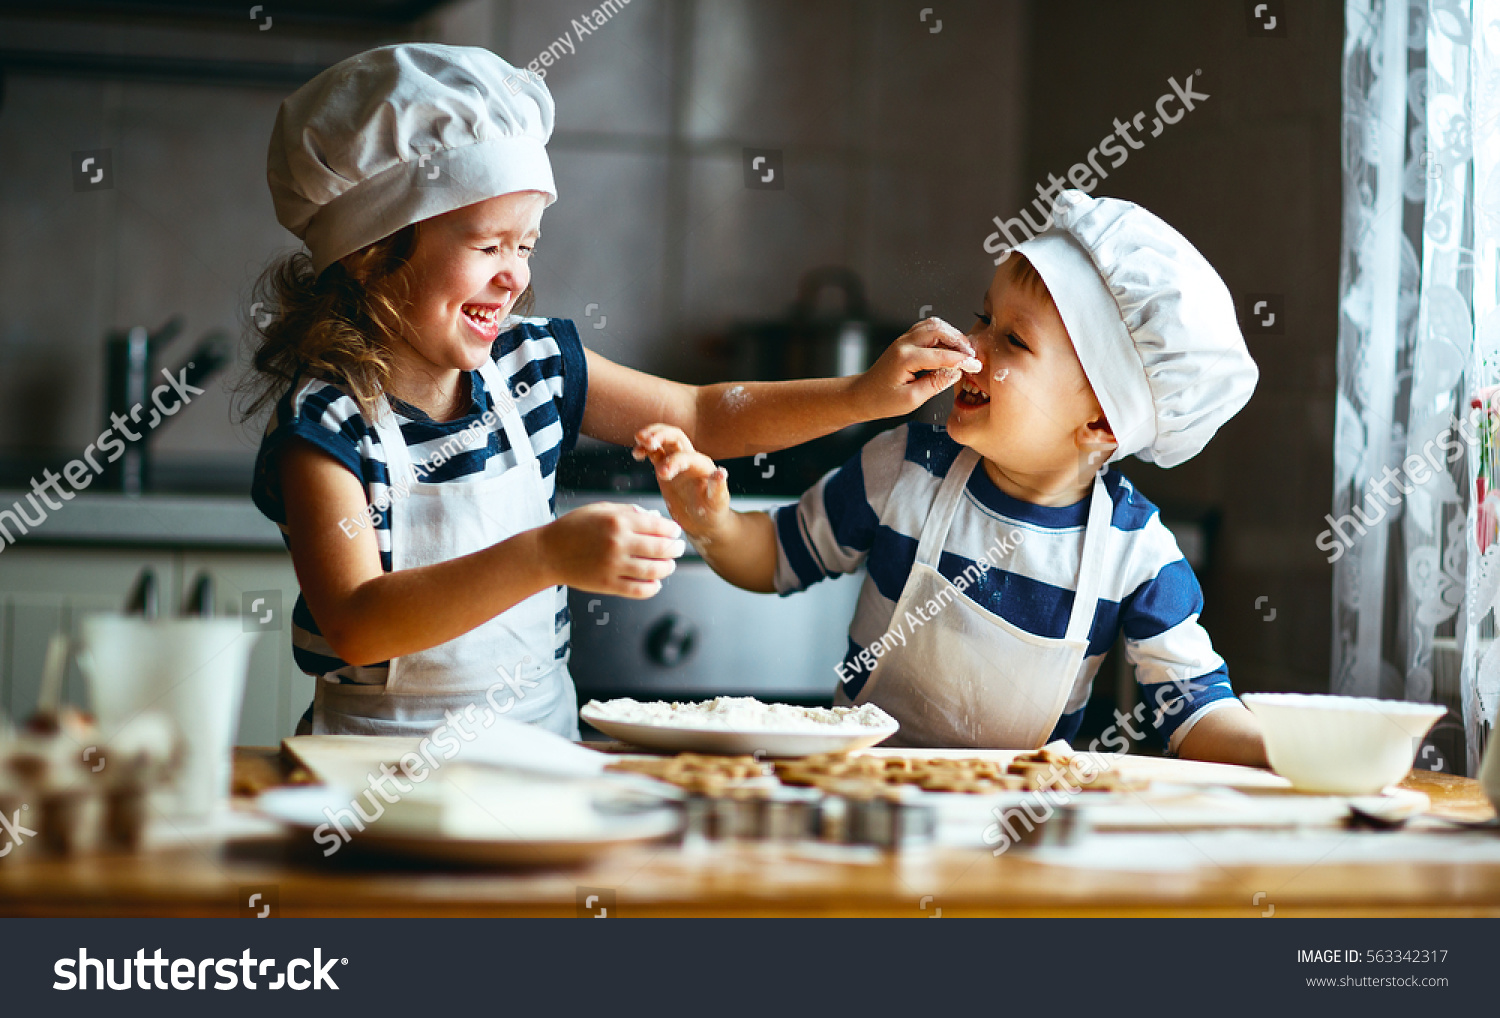 happy family  funny kids are preparing the dough, bake cookies in the kitchen #563342317